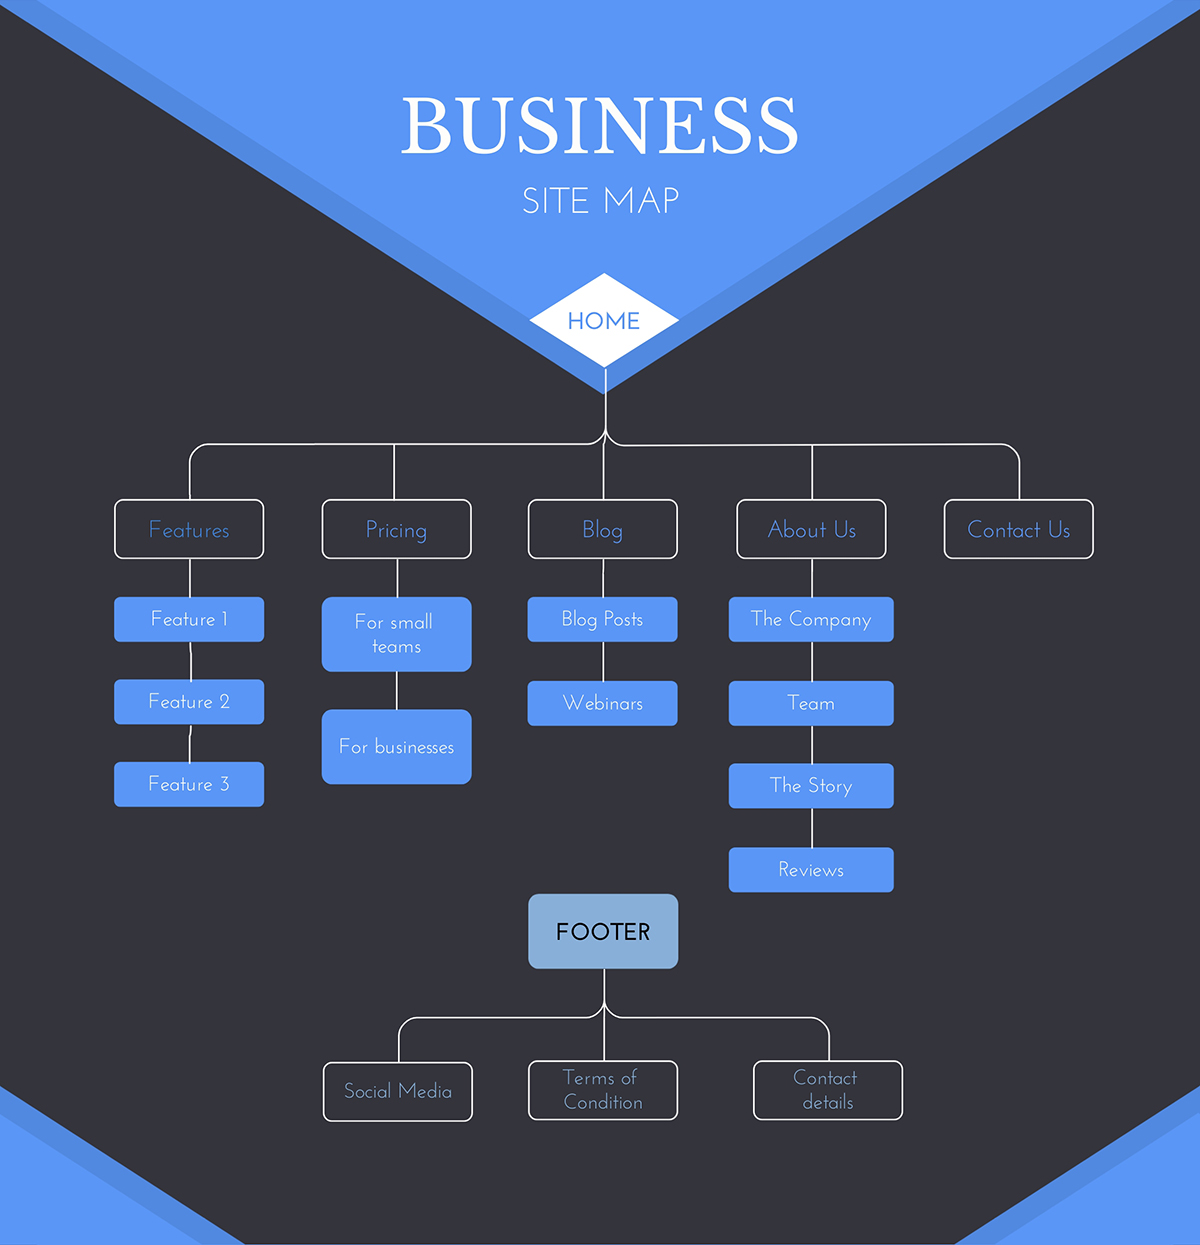 A business site map template available to customize in Visme.